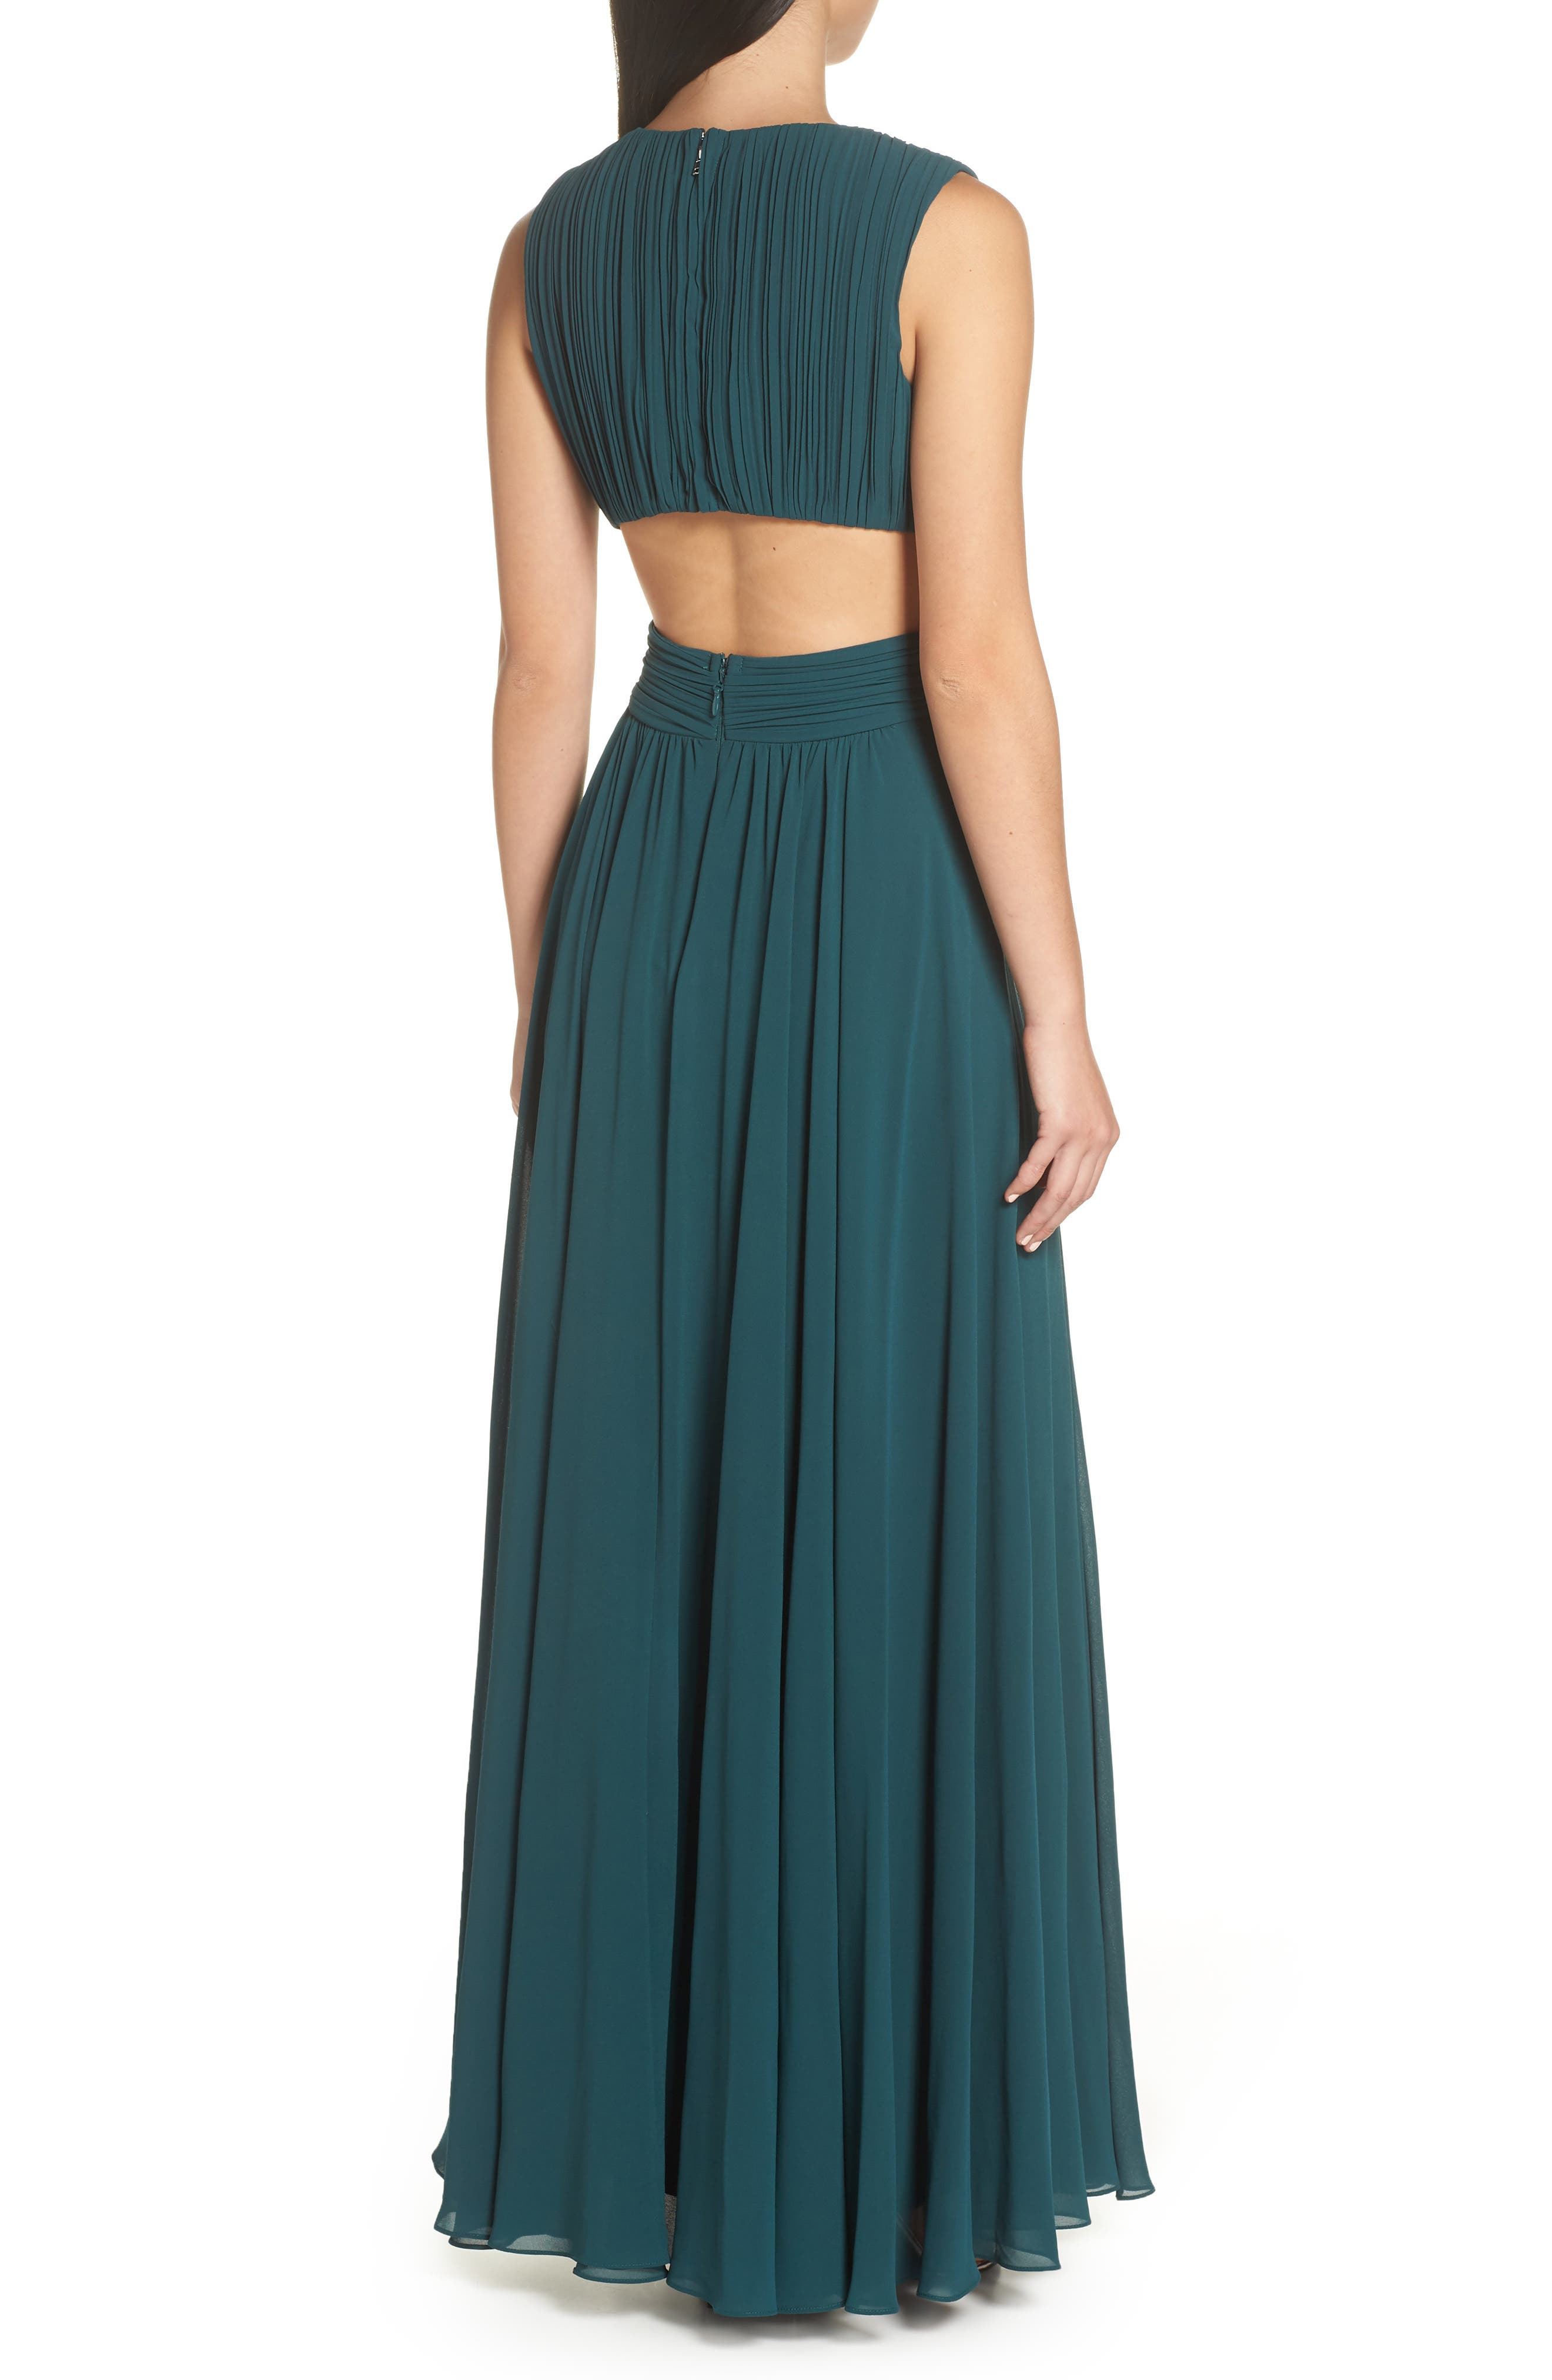 LULUS, Vivid Imagination Chiffon Gown, Alternate thumbnail 2, color, FOREST GREEN